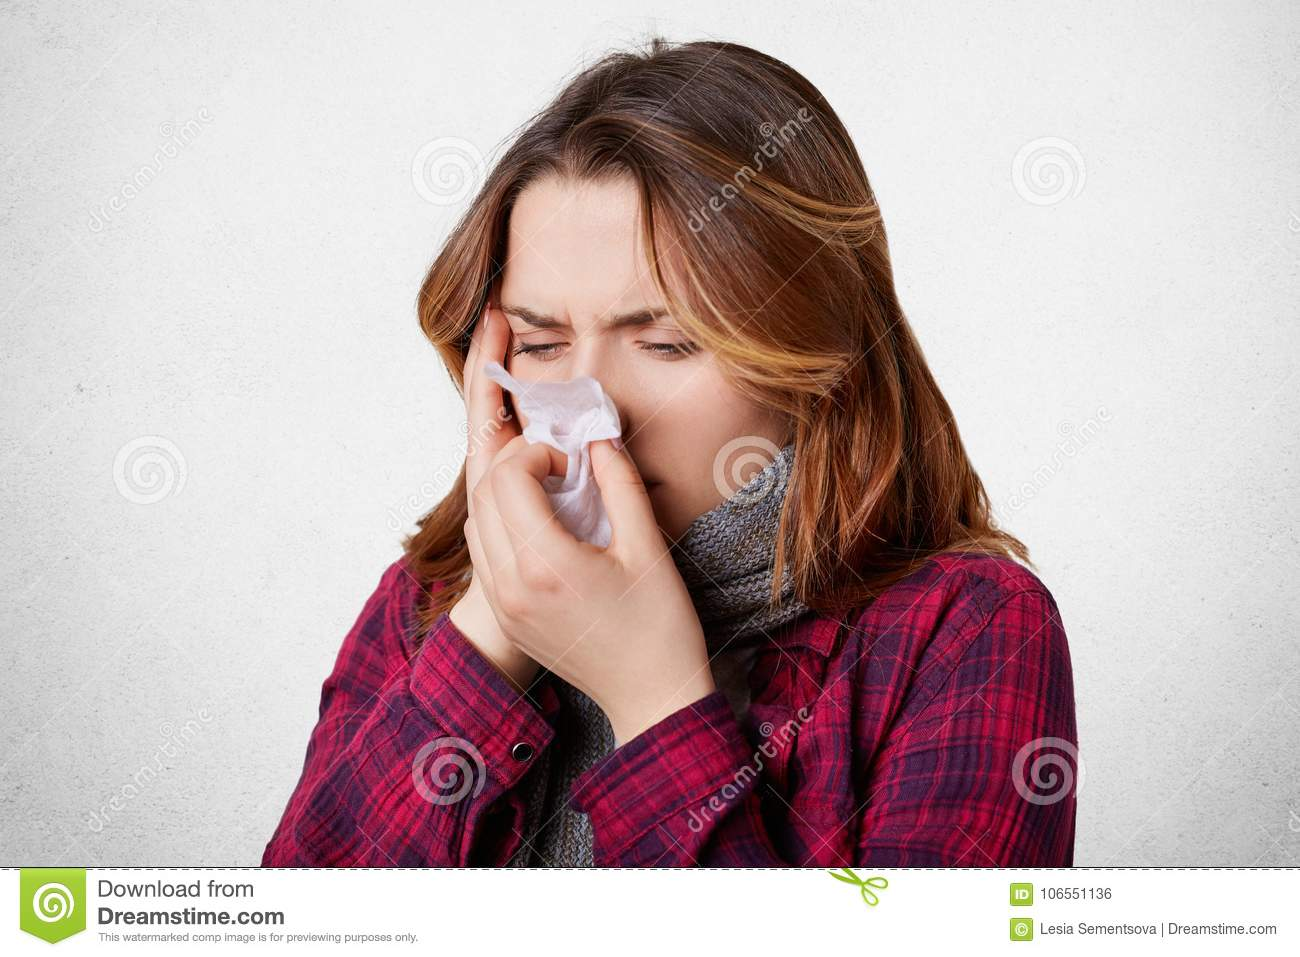 Sick desperate woman has flu, running nose, blows nose in handkerchief, has terrible headache, caught cold after long walk outside